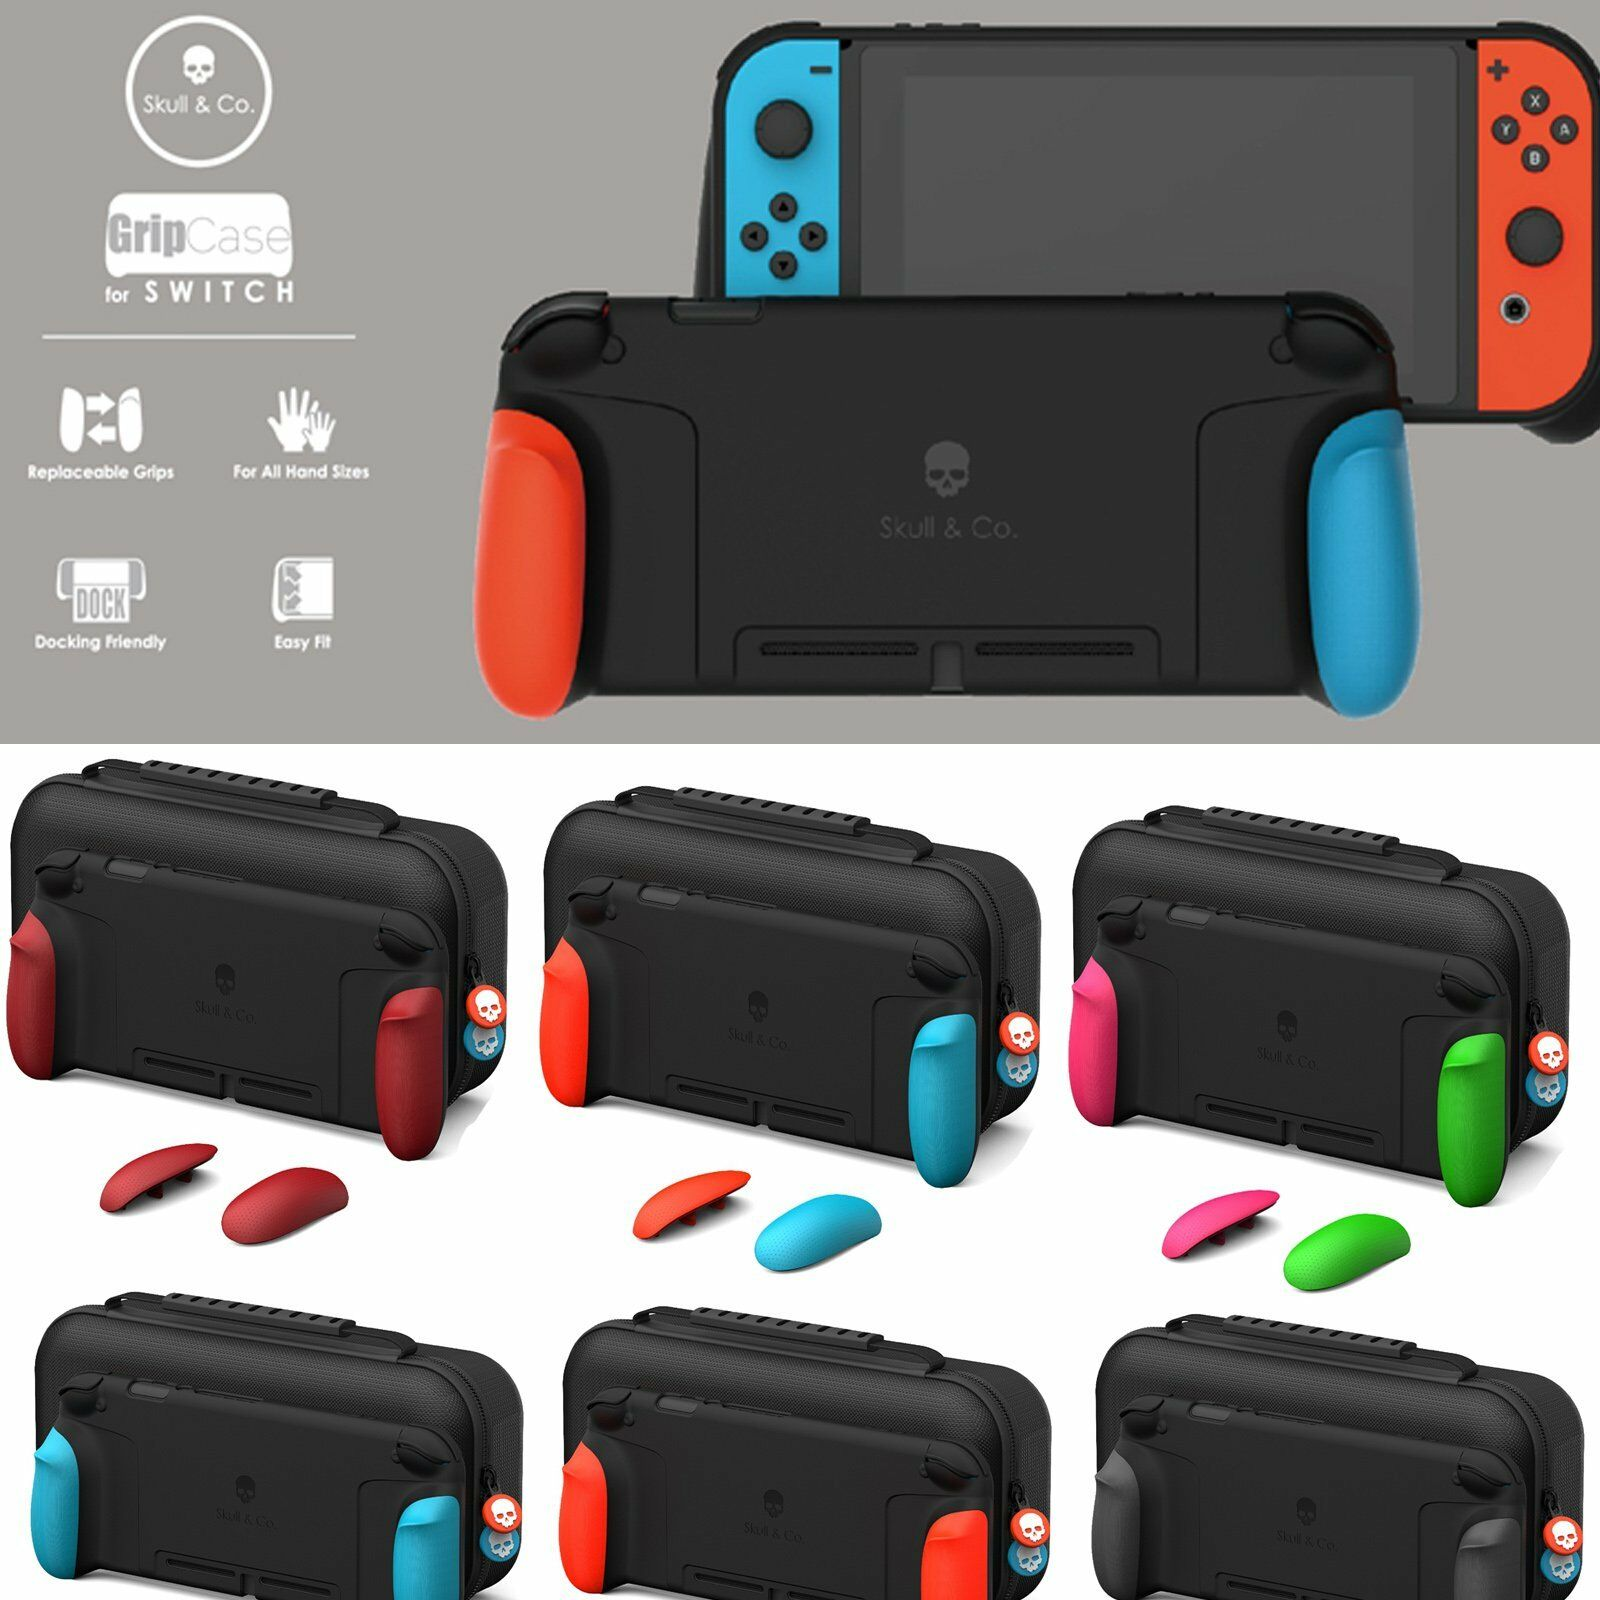 Skull&Co. Ergonomic Griff Case   Body Gehäuse Schutzhülle For NS Switch Console